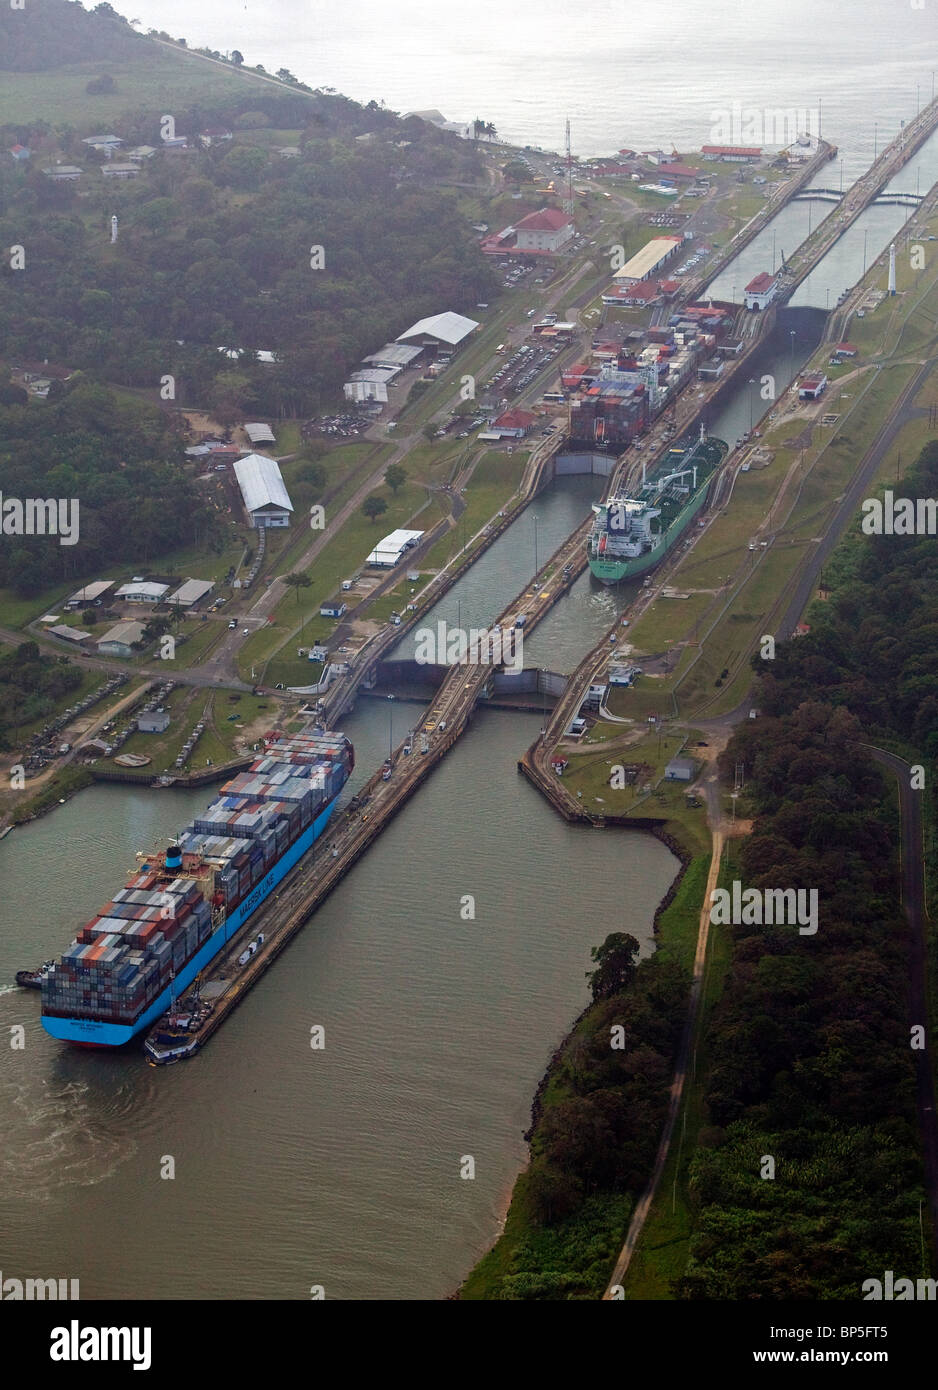 aerial view above container ships Gatun Locks Panama Canal - Stock Image